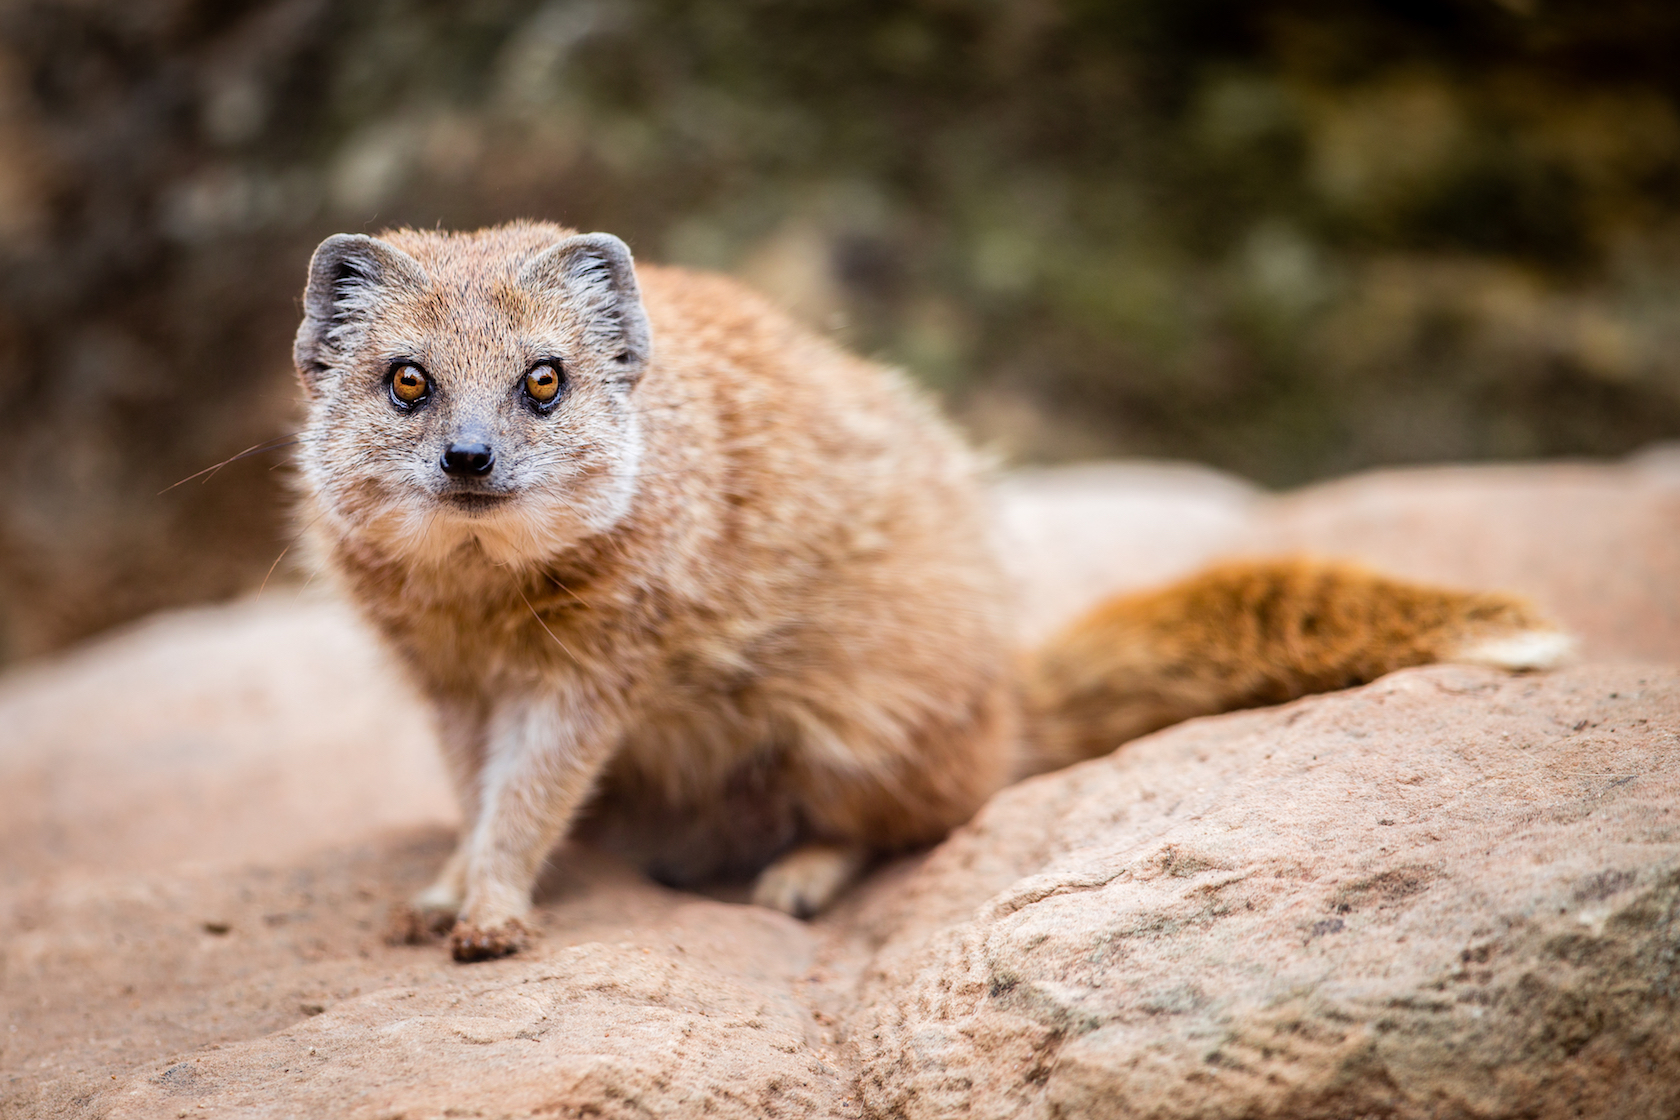 A new study reveals that banded mongoose families actually target close relatives when they evict members from their social groups.